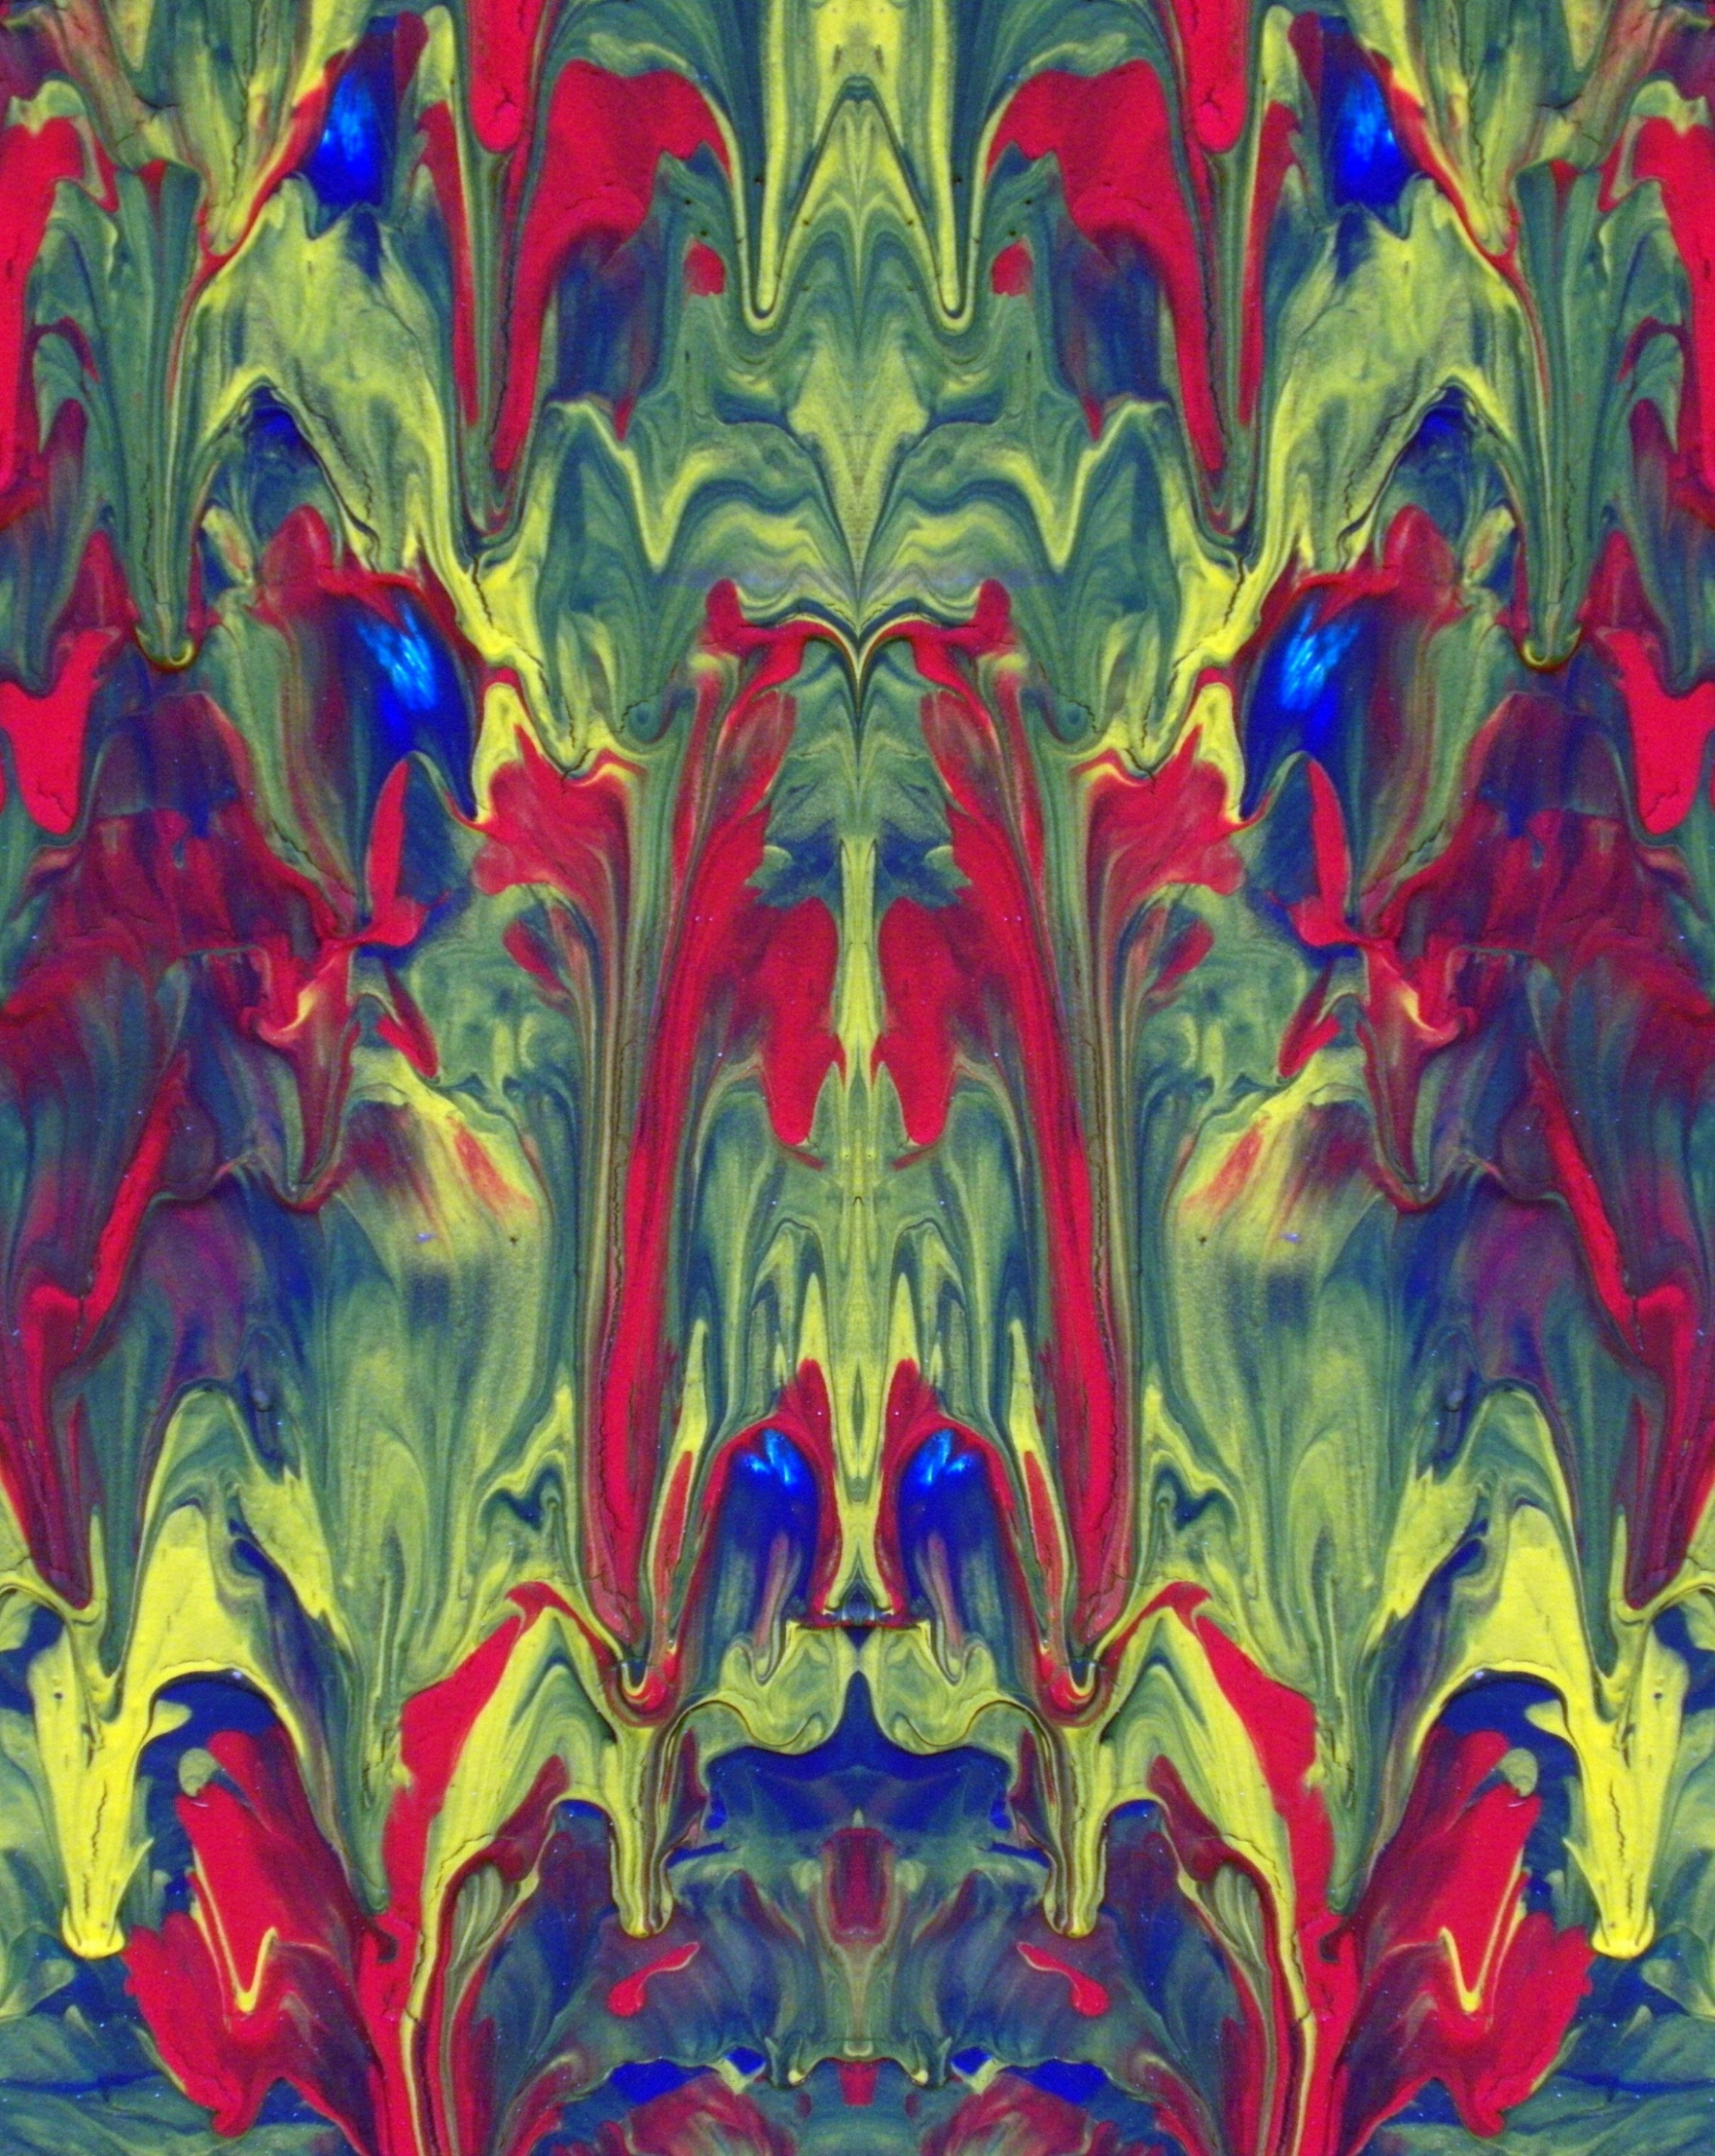 Abstract painted mirror effect photo